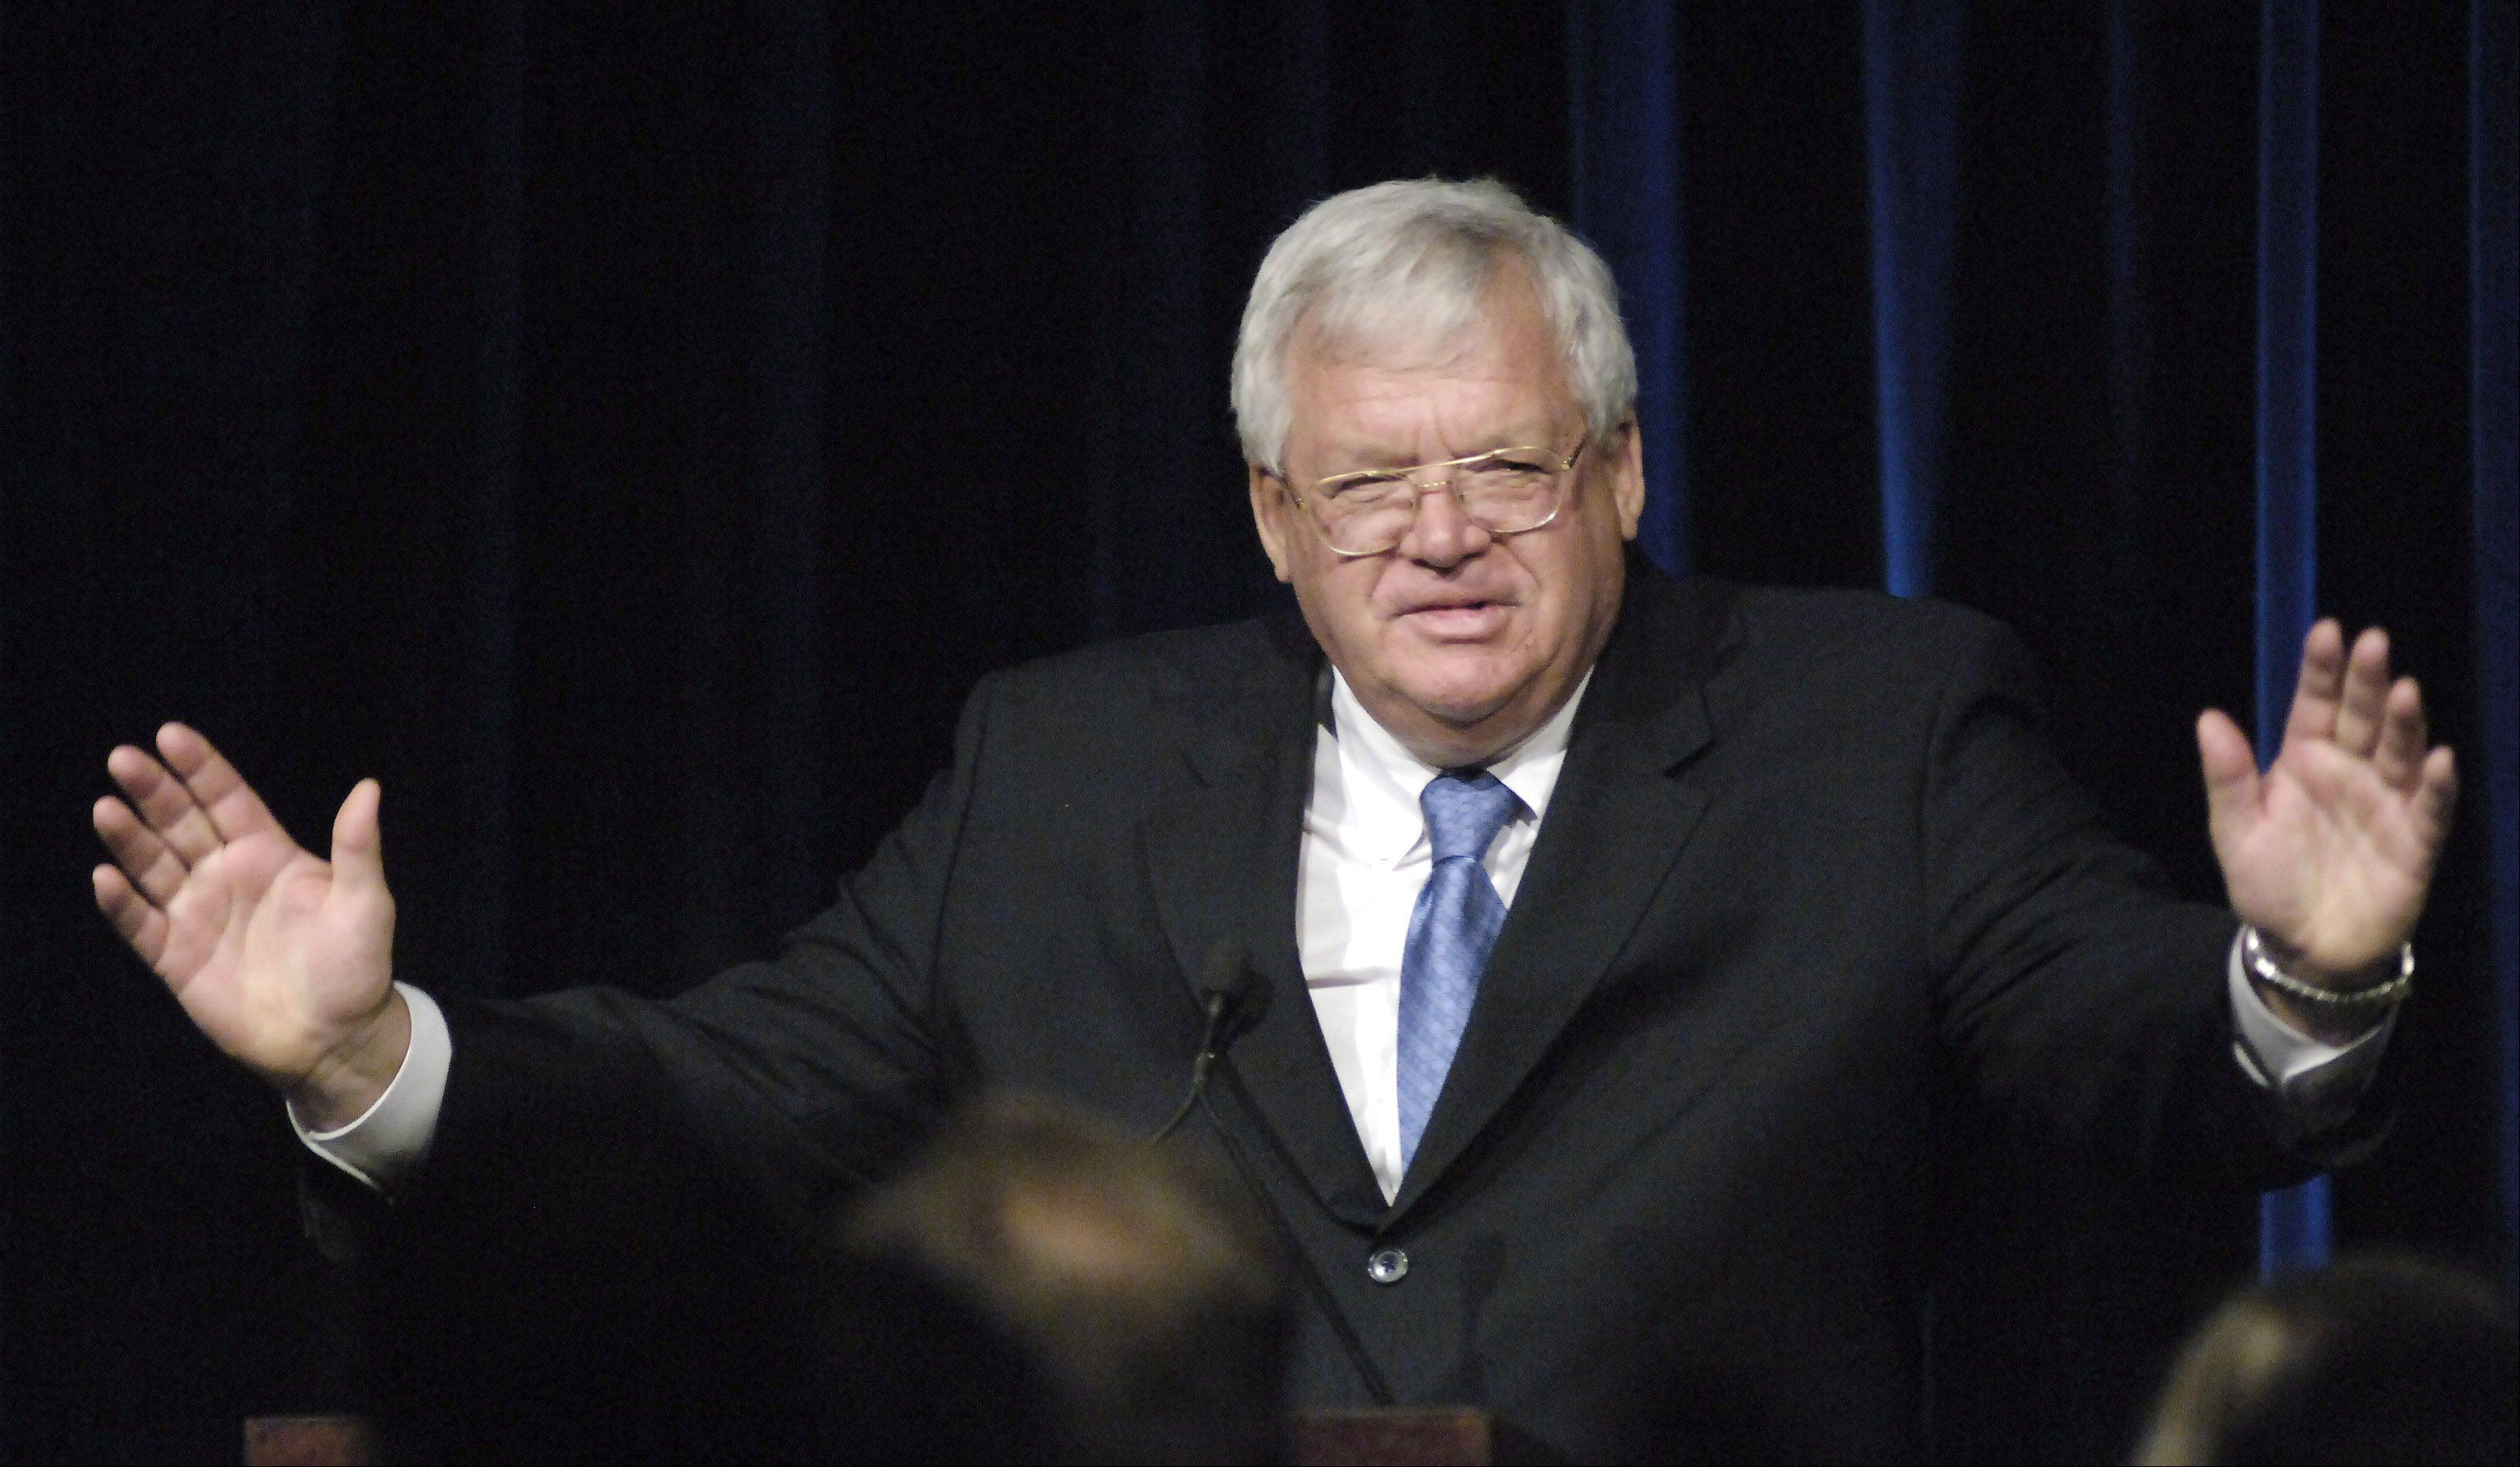 Former U.S. Speaker of the House J. Dennis Hastert will be in Naperville Thursday to provide analysis of Tuesday's election as part of a program sponsored by Northern Illinois University.